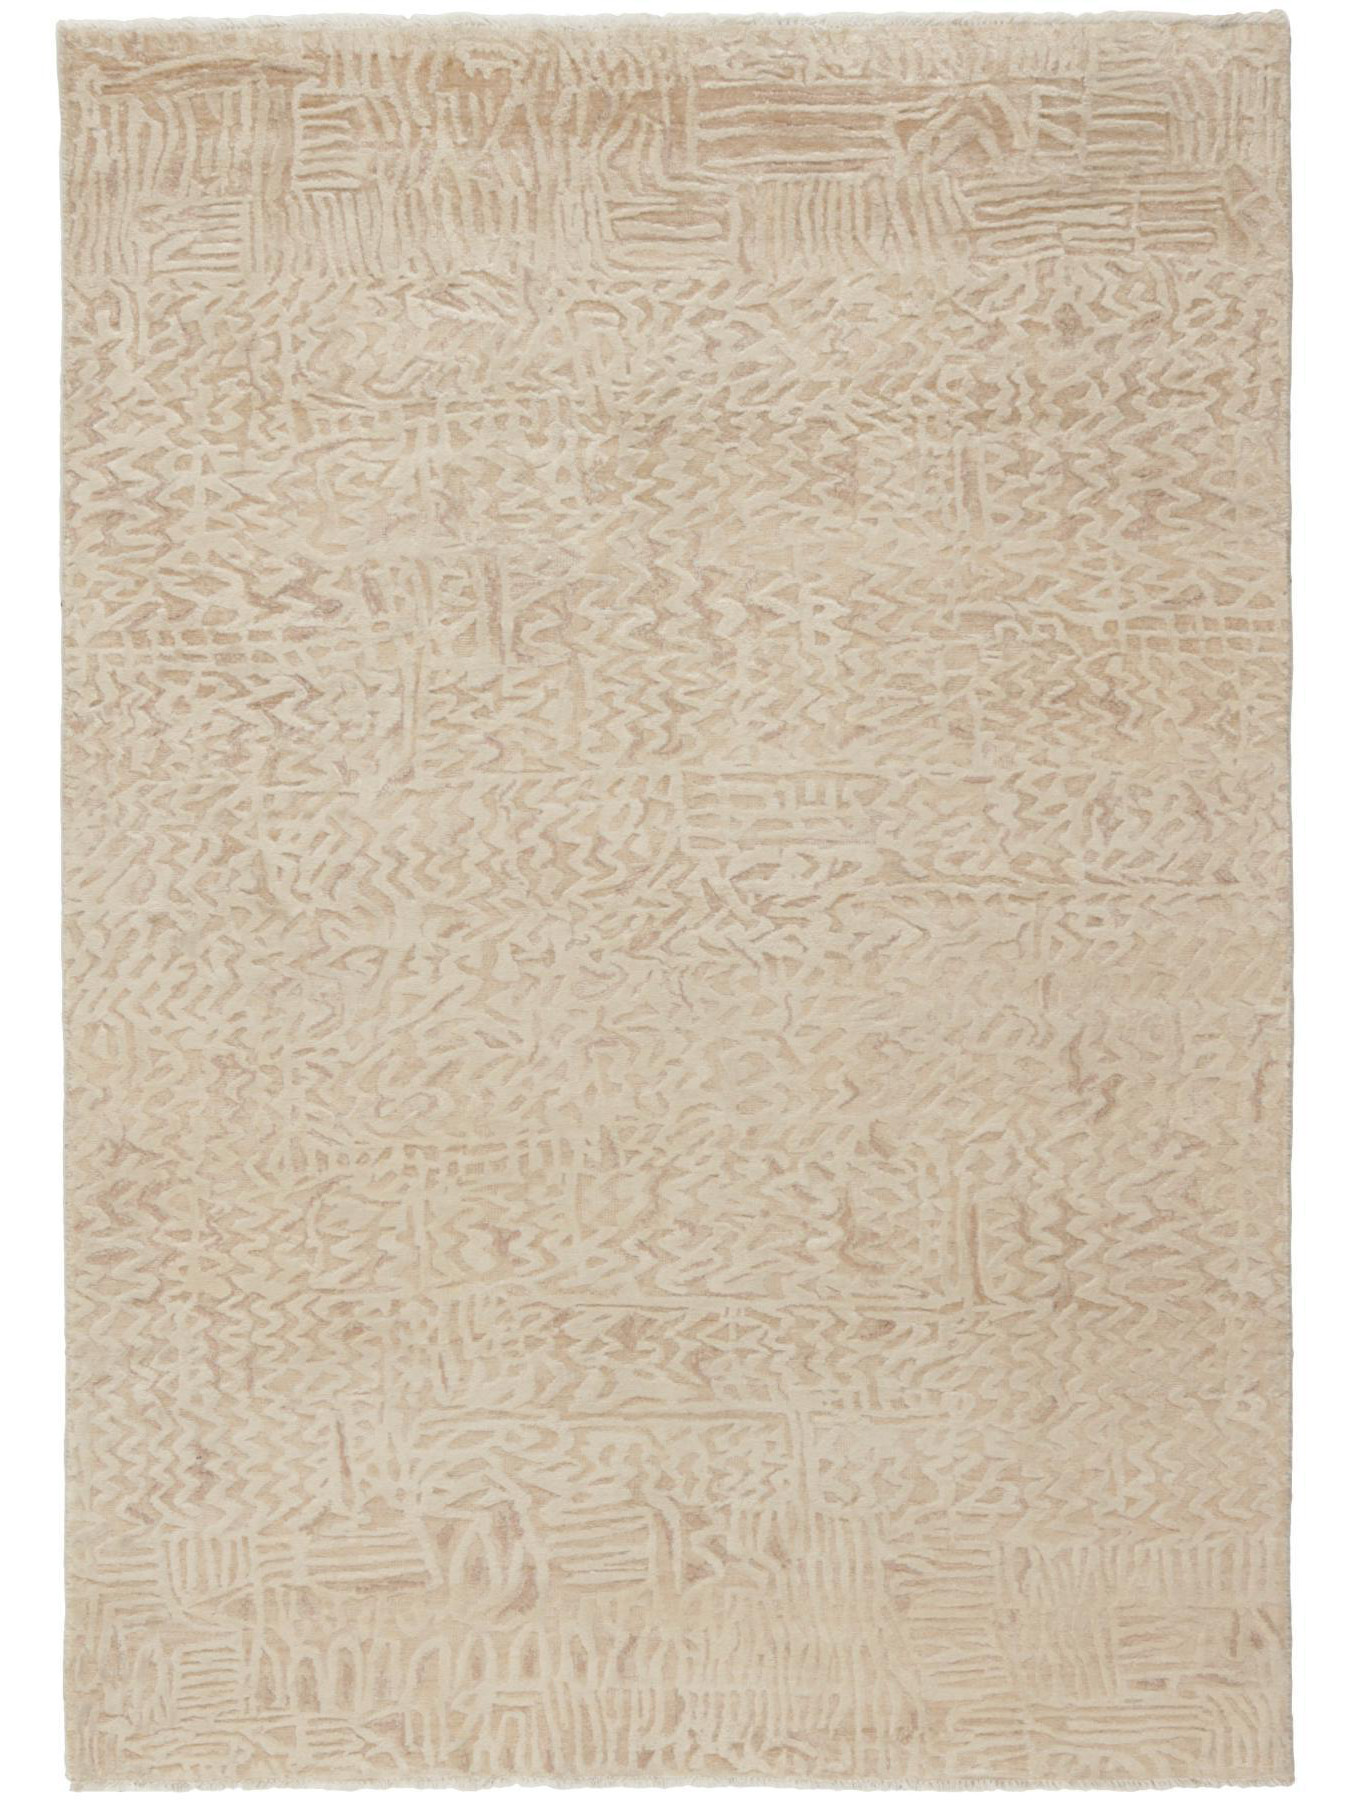 Luxury carpets - Damask-AL-450 B-75/D-022/B-65